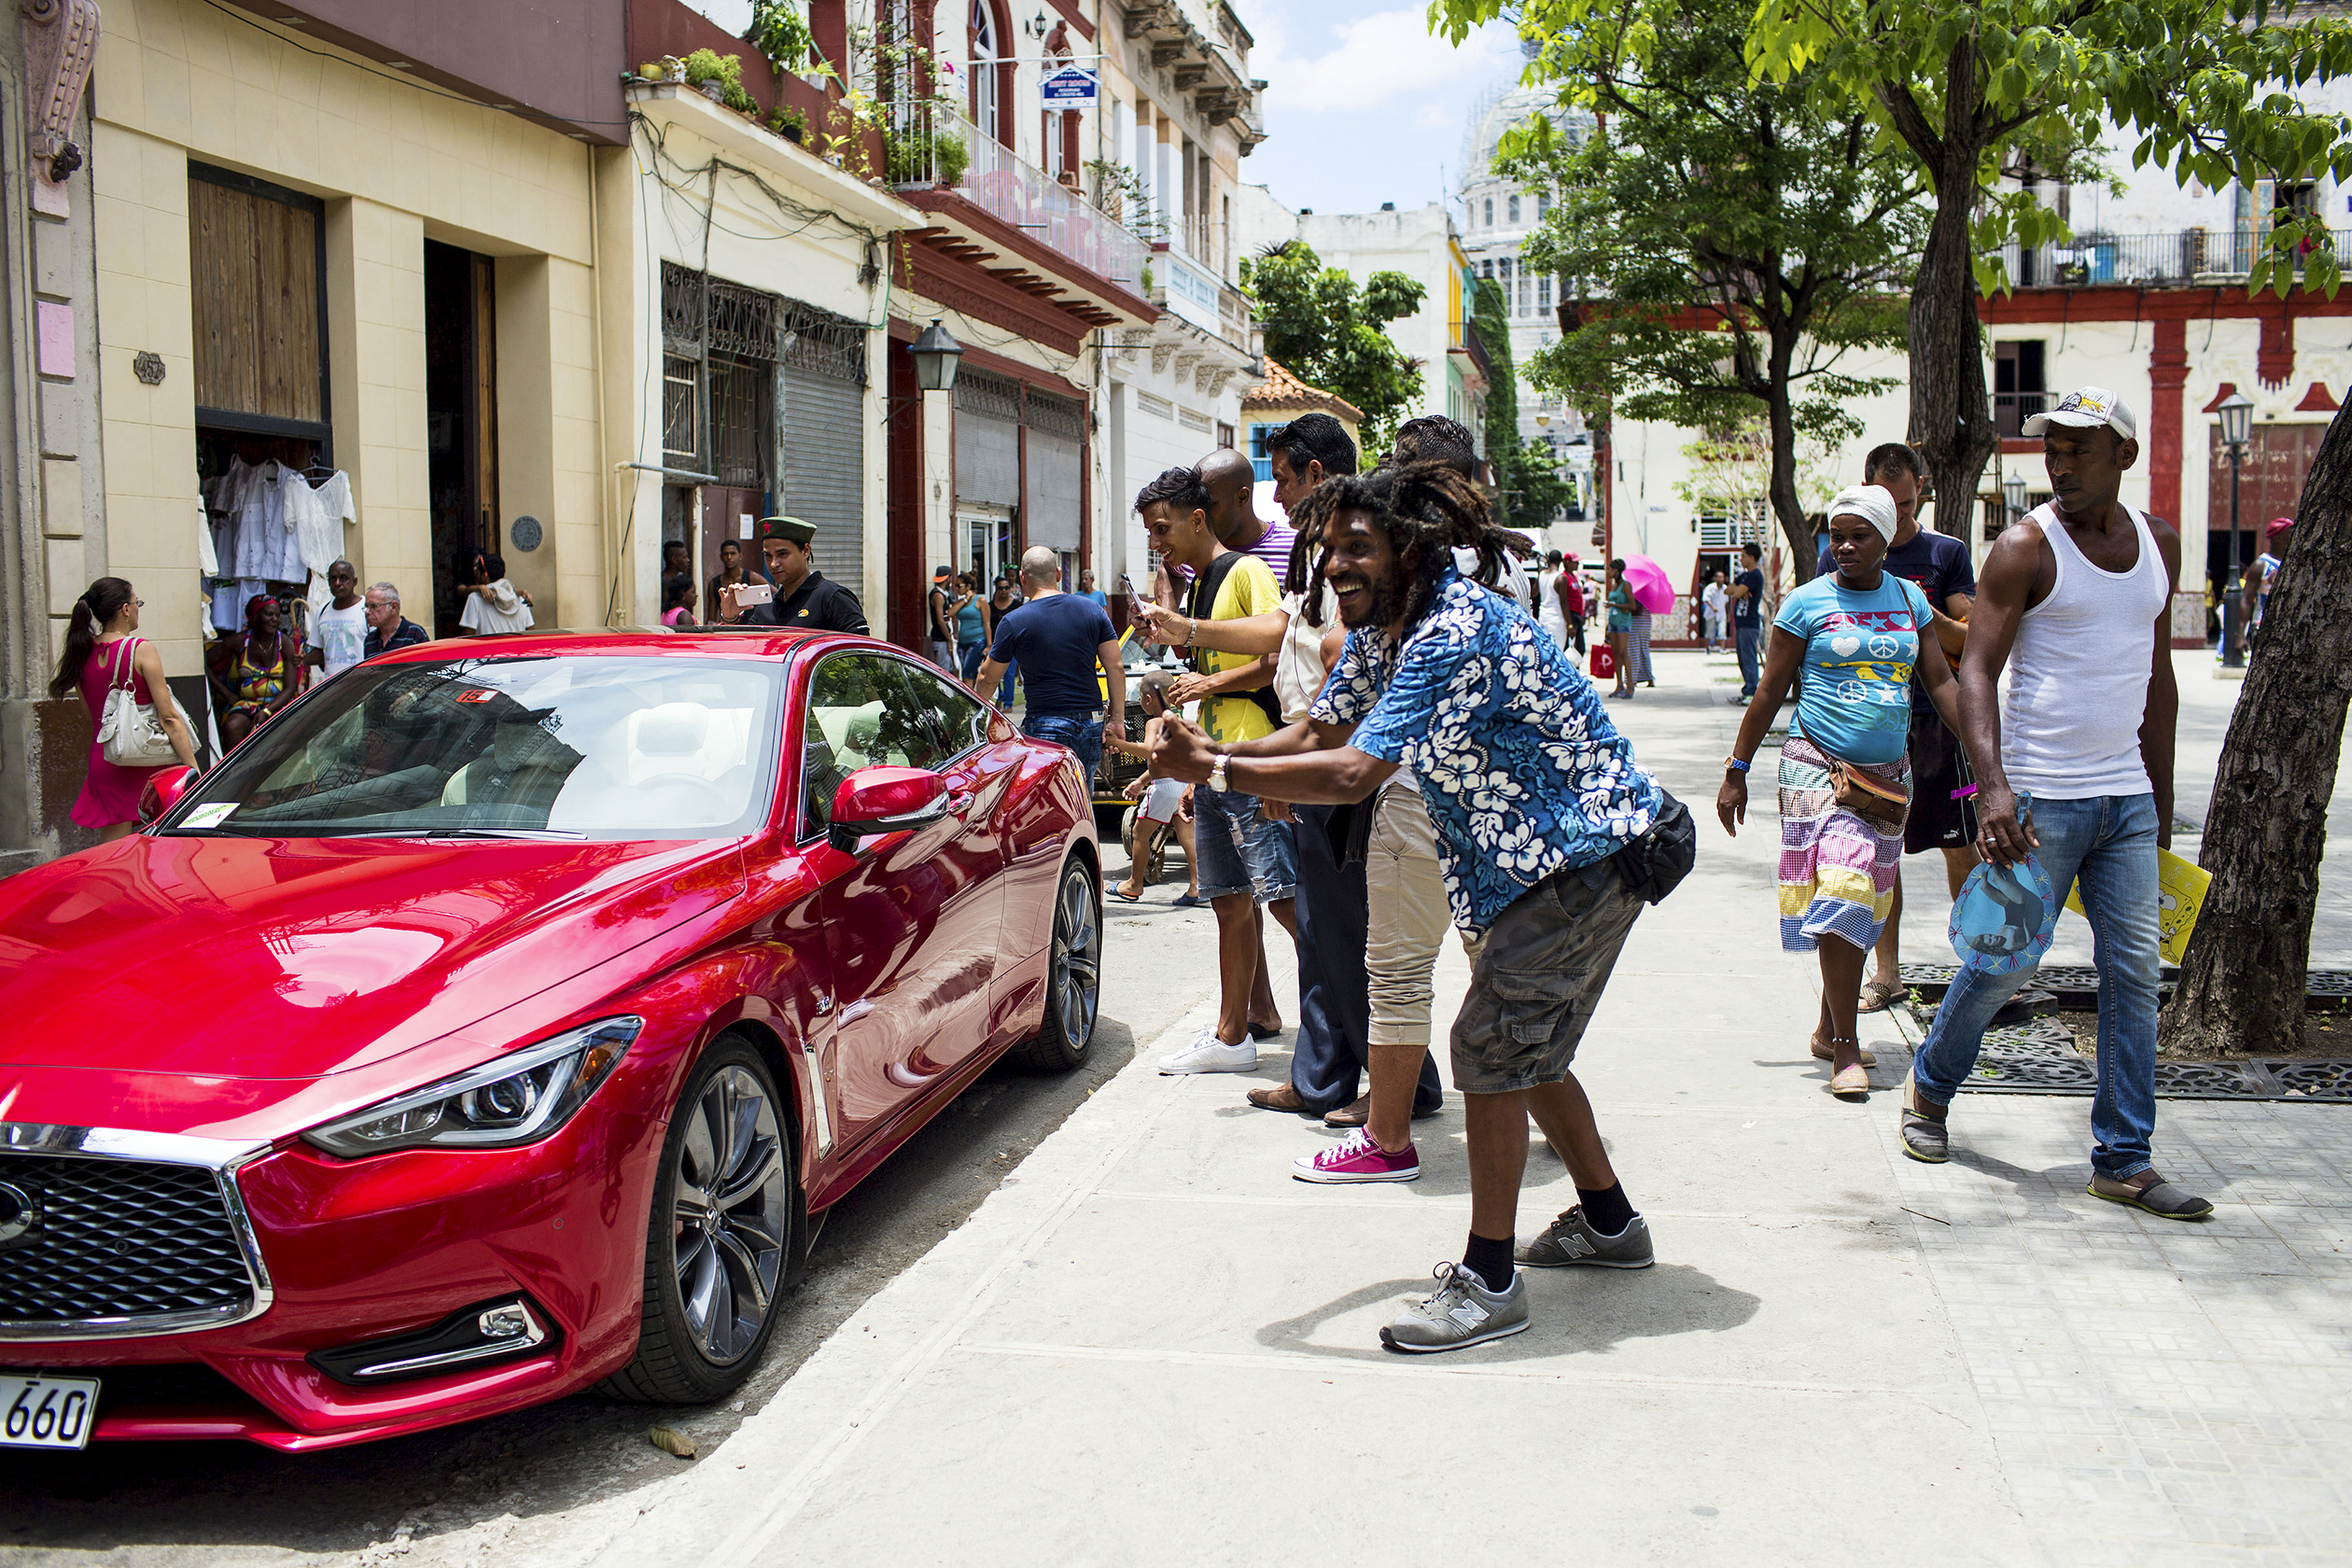 Residents of Old Havana admire the Infiniti Q60.